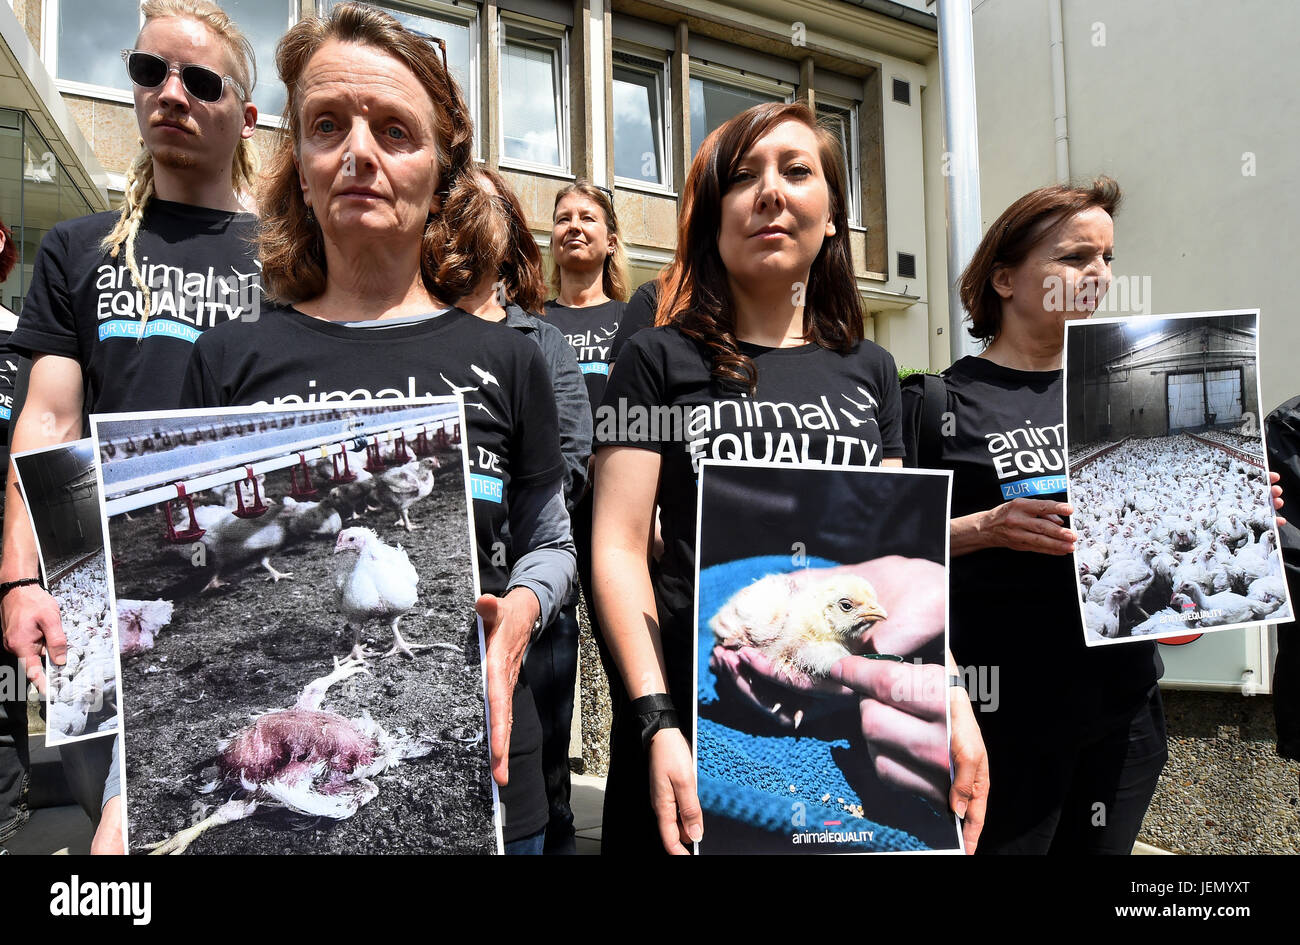 Representatives of 'Animal Equality' hol up posters showing images from a chicken farm during an event against - Stock Image